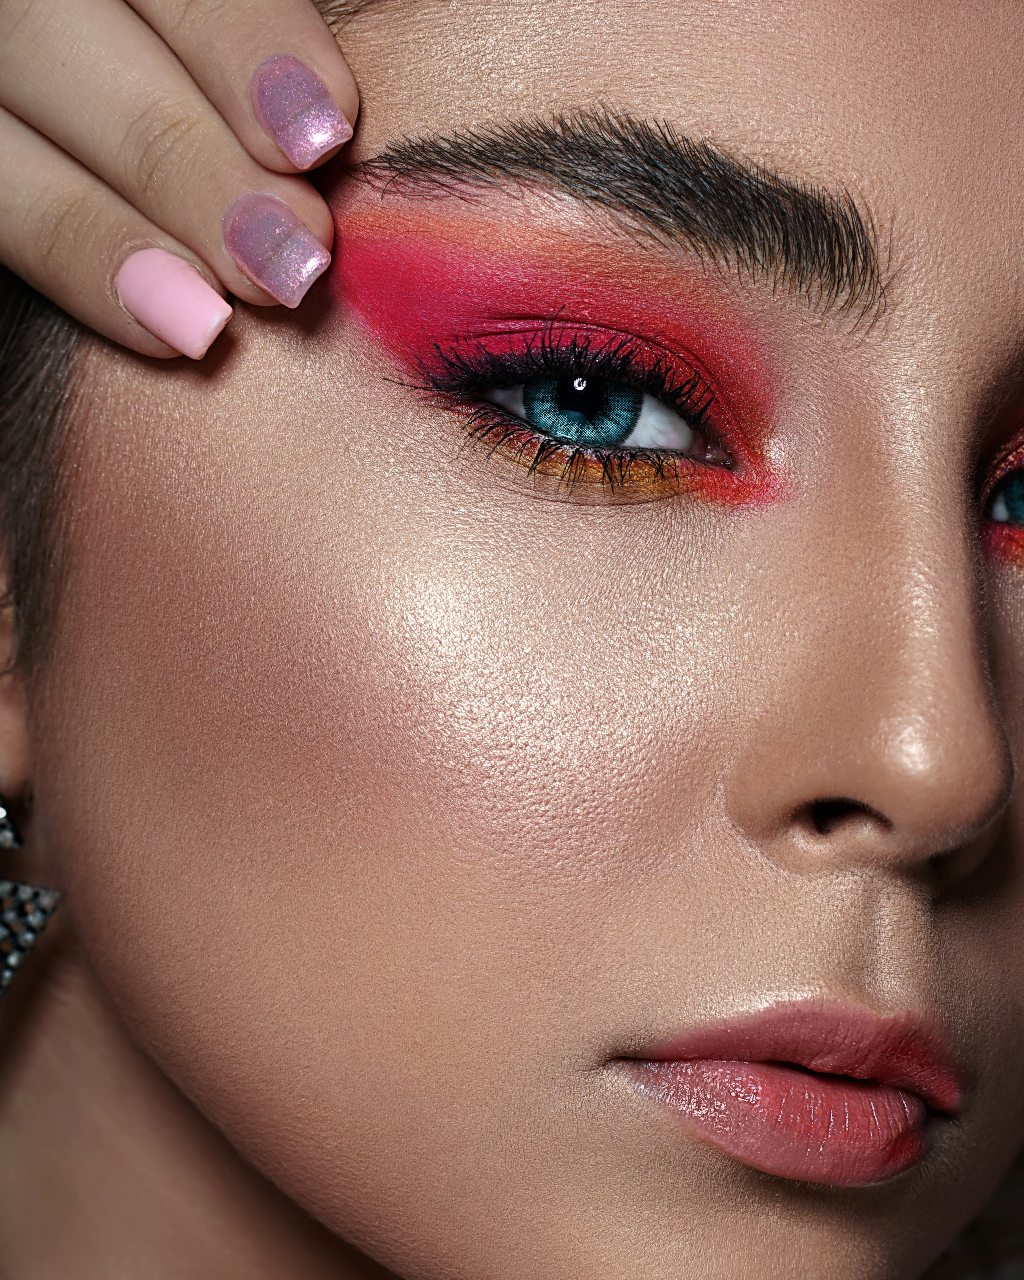 close-up-photo-of-woman-with-pink-eyeshadow-3912572